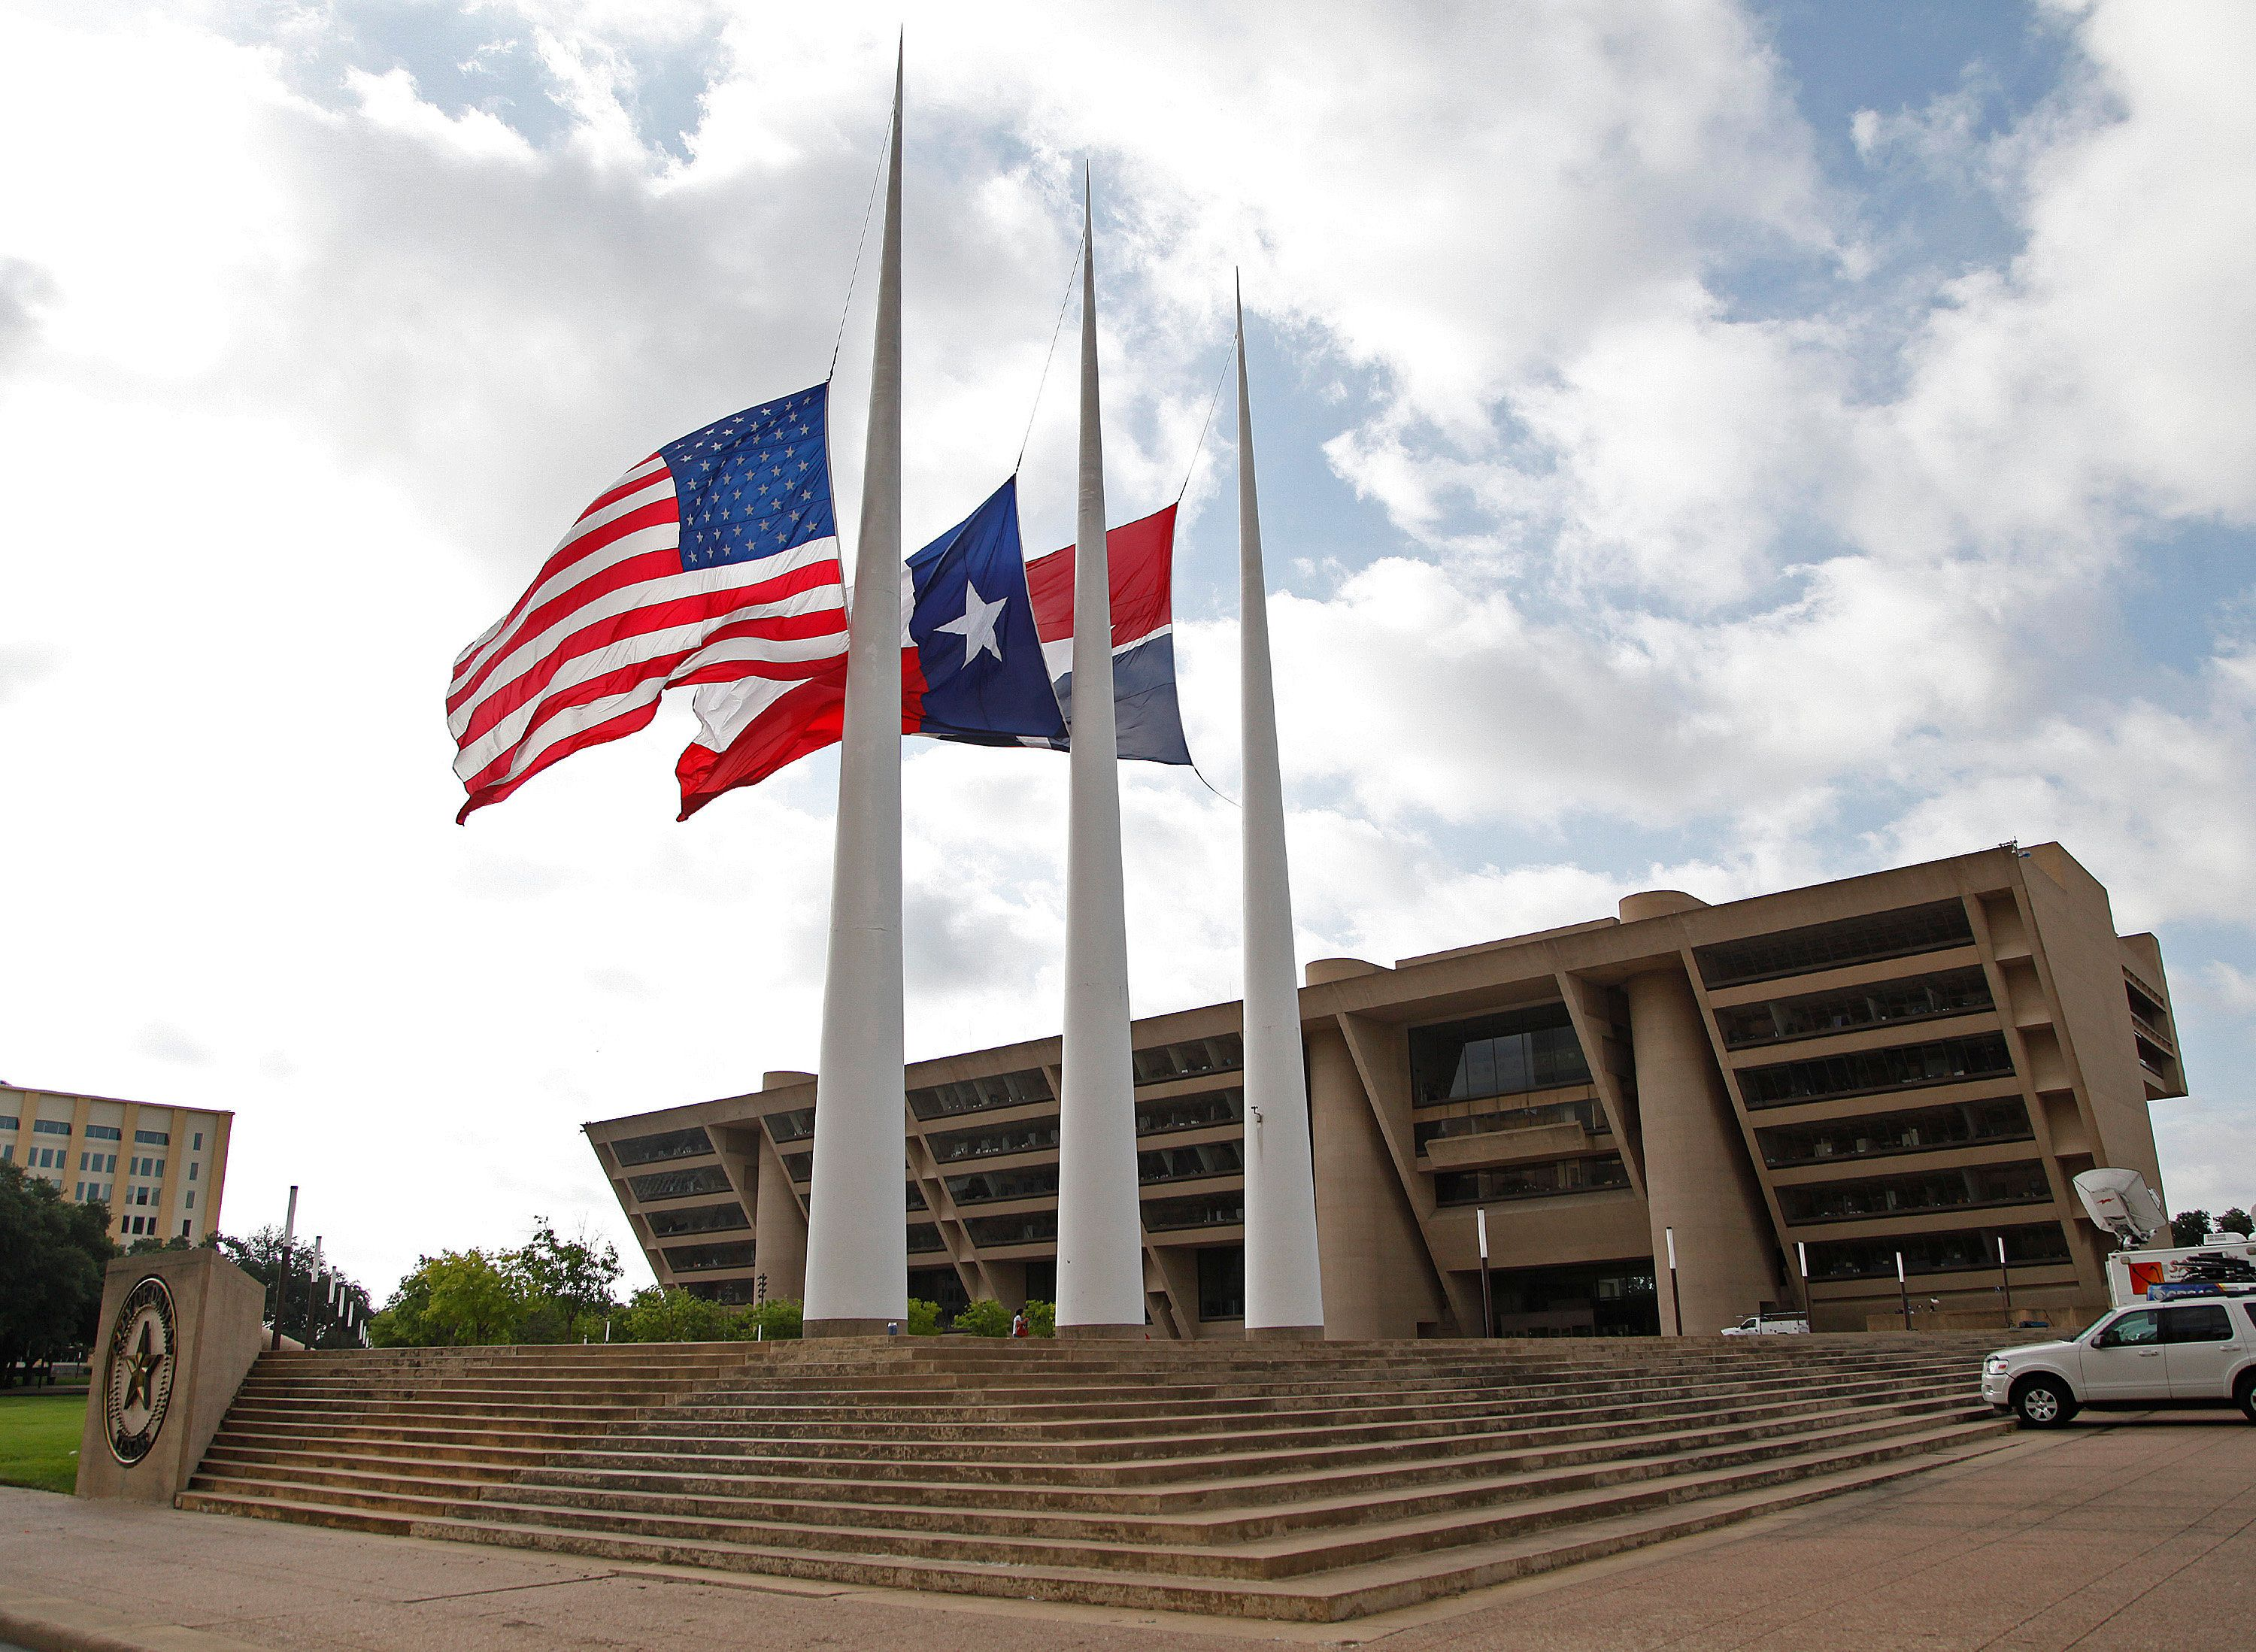 DALLAS, TX - JULY 8: Flags fly at half mast at Dallas City Hall following the fatal shootings of five police officers on July 8, 2016 in Dallas, Texas. Micah Xavier Johnson has been identified as the suspected sniper in the fatal shooting of five police officers, and injuring seven more at a Black Lives Matter demonstration held on July 7, 2016 in Dallas, Texas. (Photo by Stewart  F. House/Getty Images)